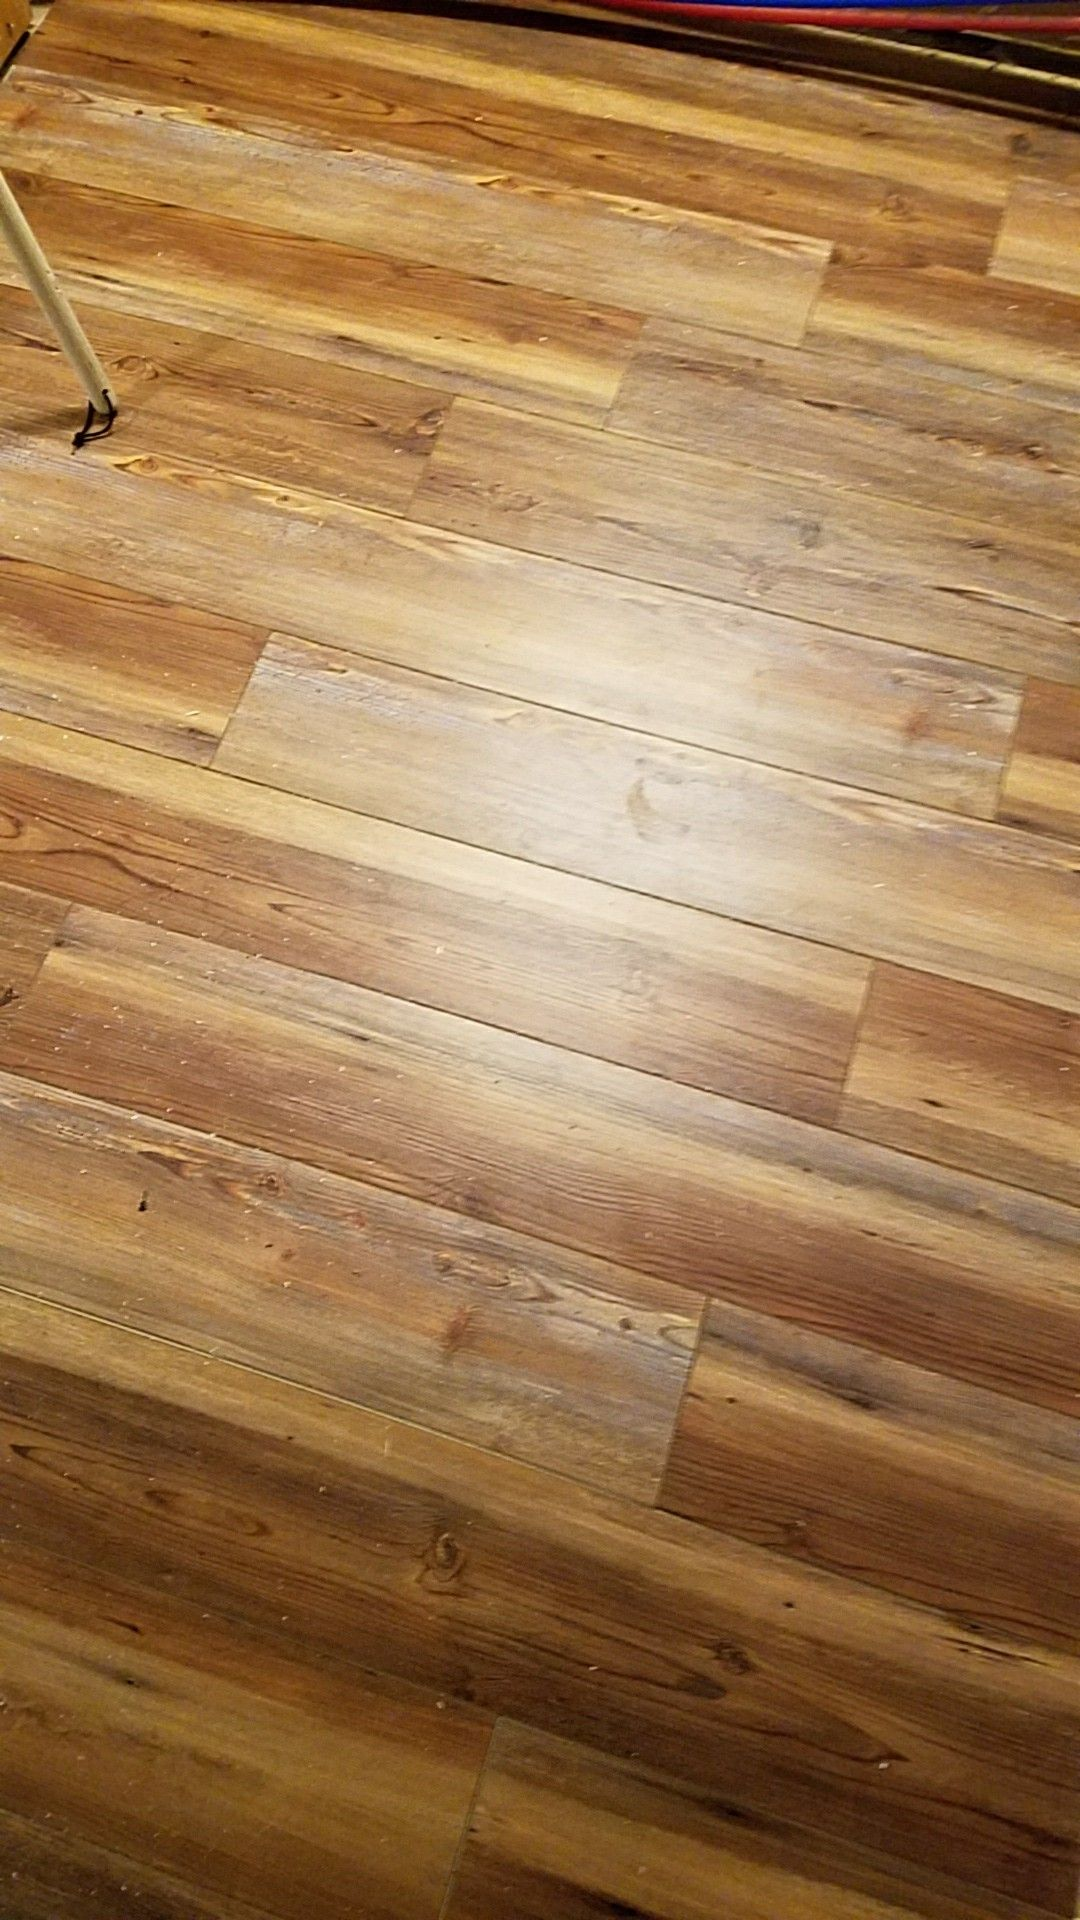 Attirant Blue Ridge Pine Vinyl Flooring. LOWES. Smartcore Ultra. House Remodeling,  Bathroom Remodeling